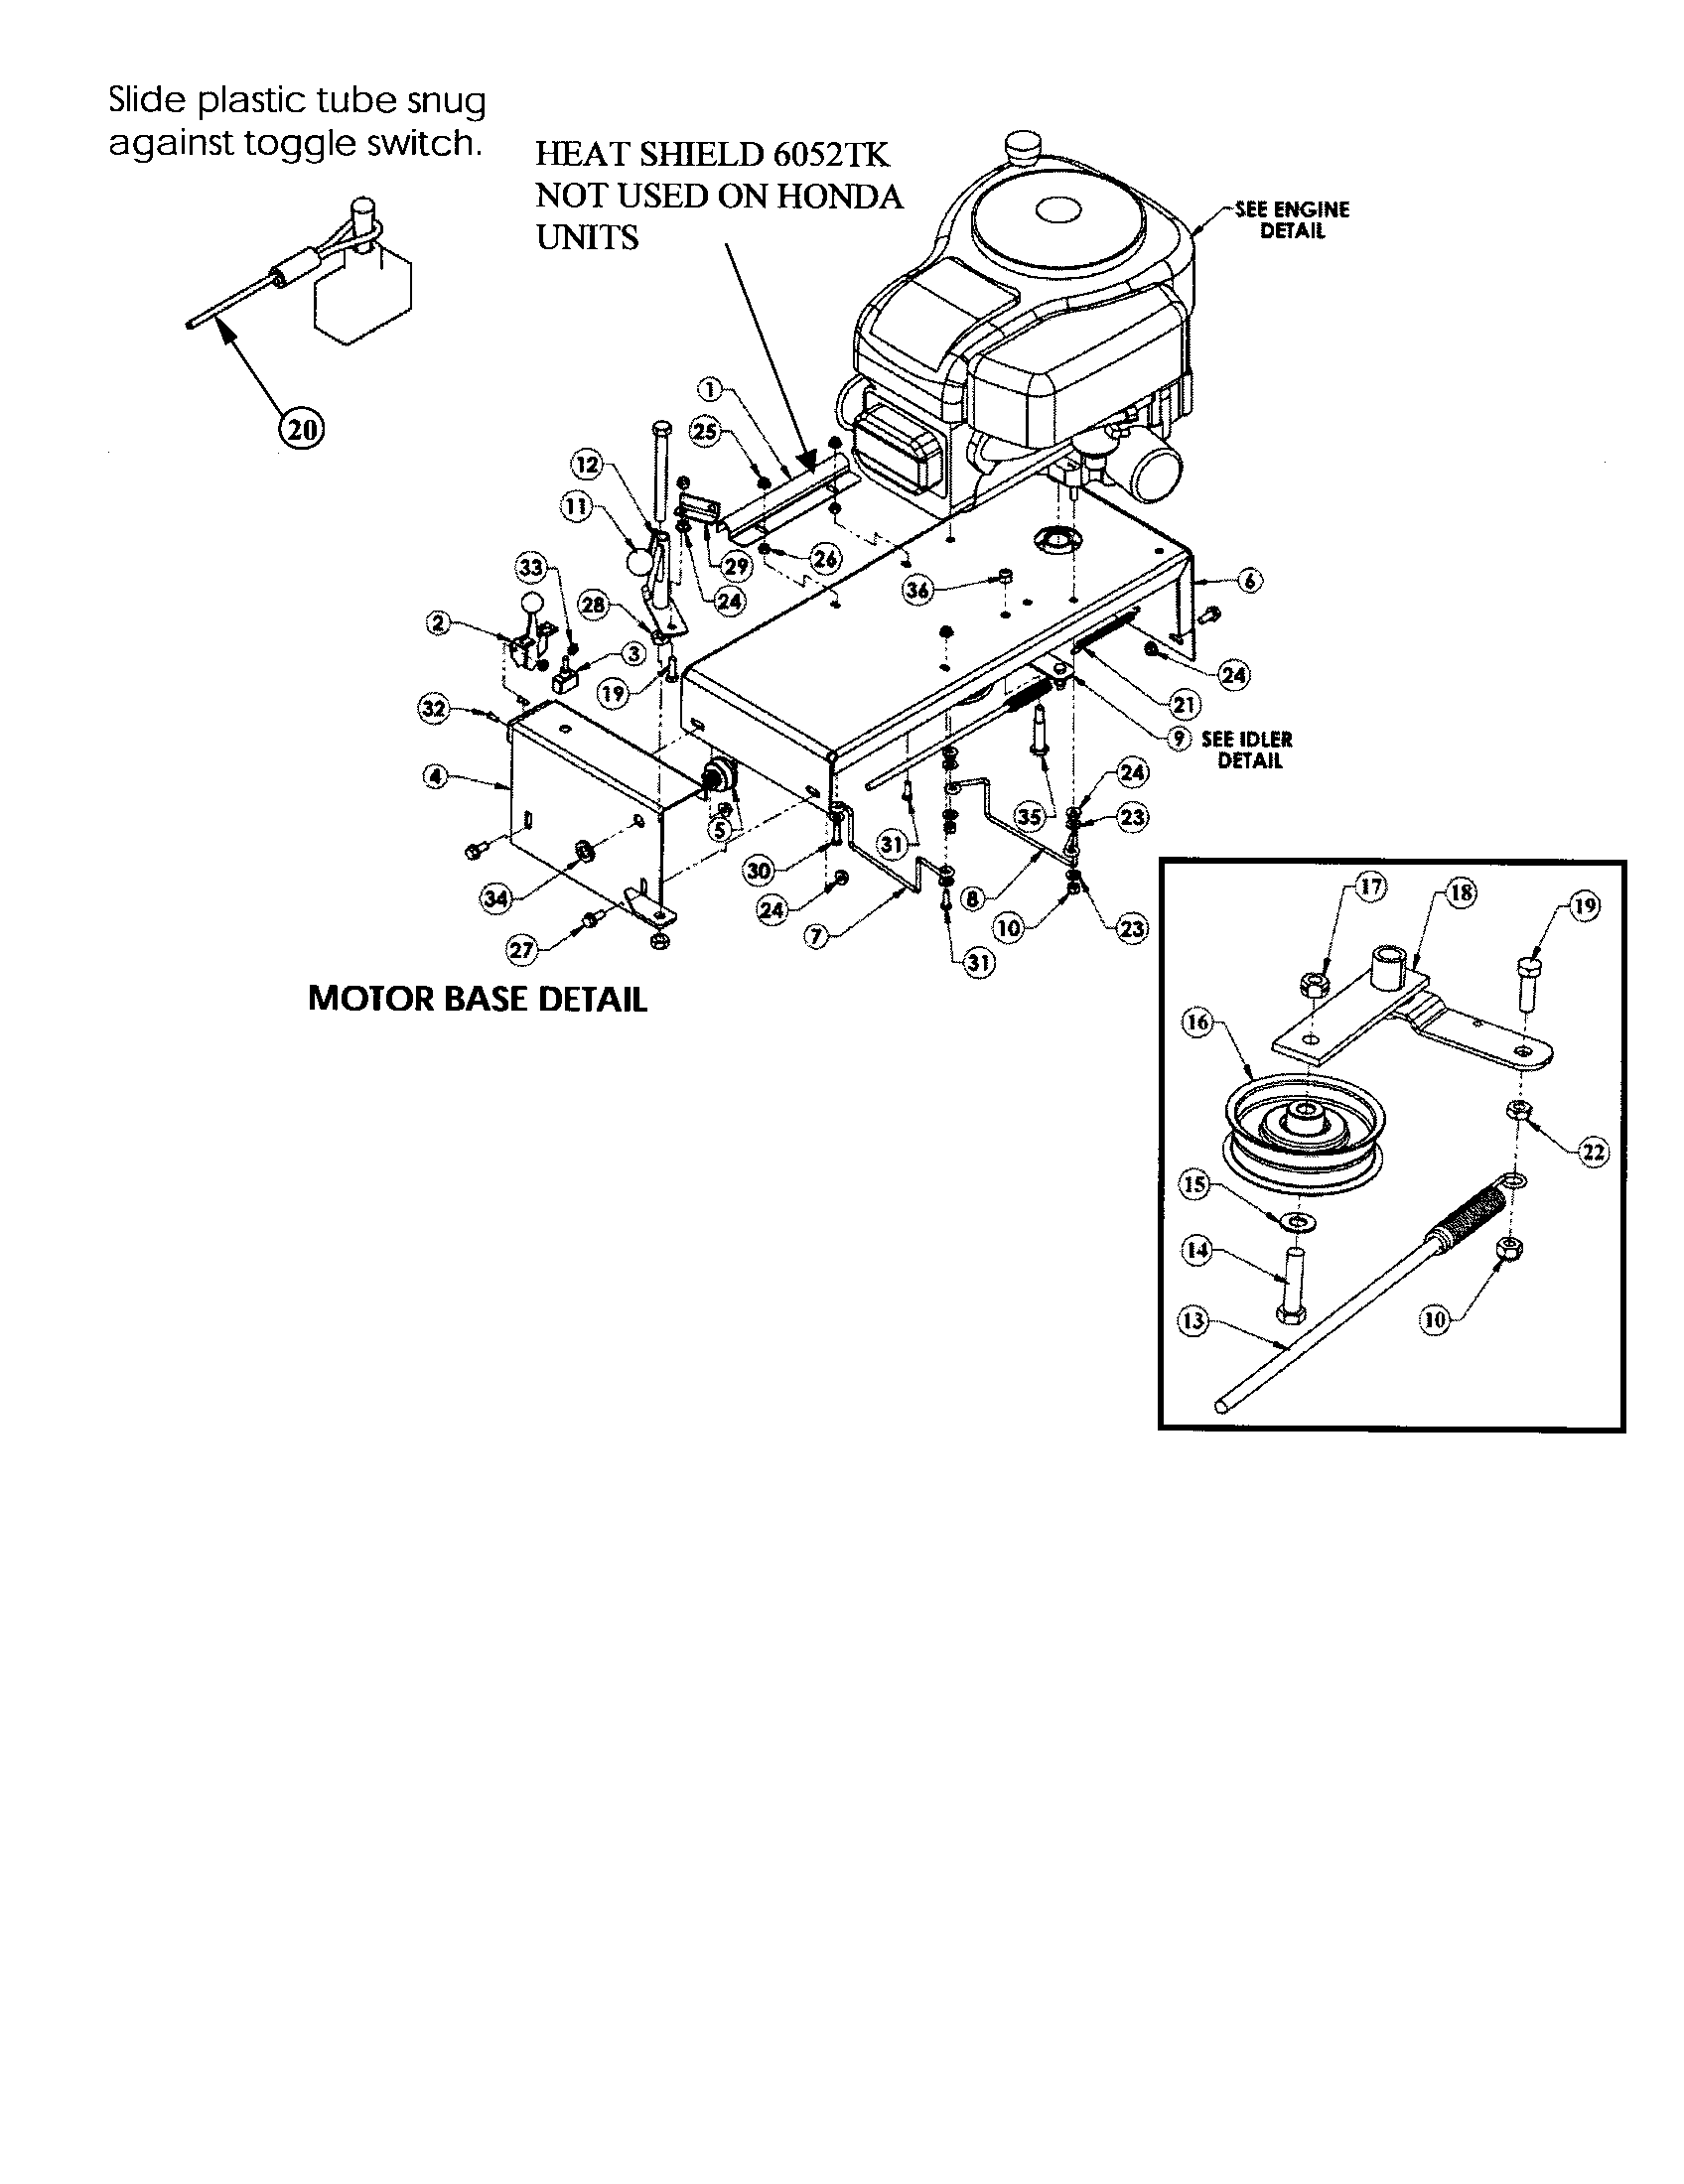 [WRG-5324] Wiring Diagram For Swisher T1260